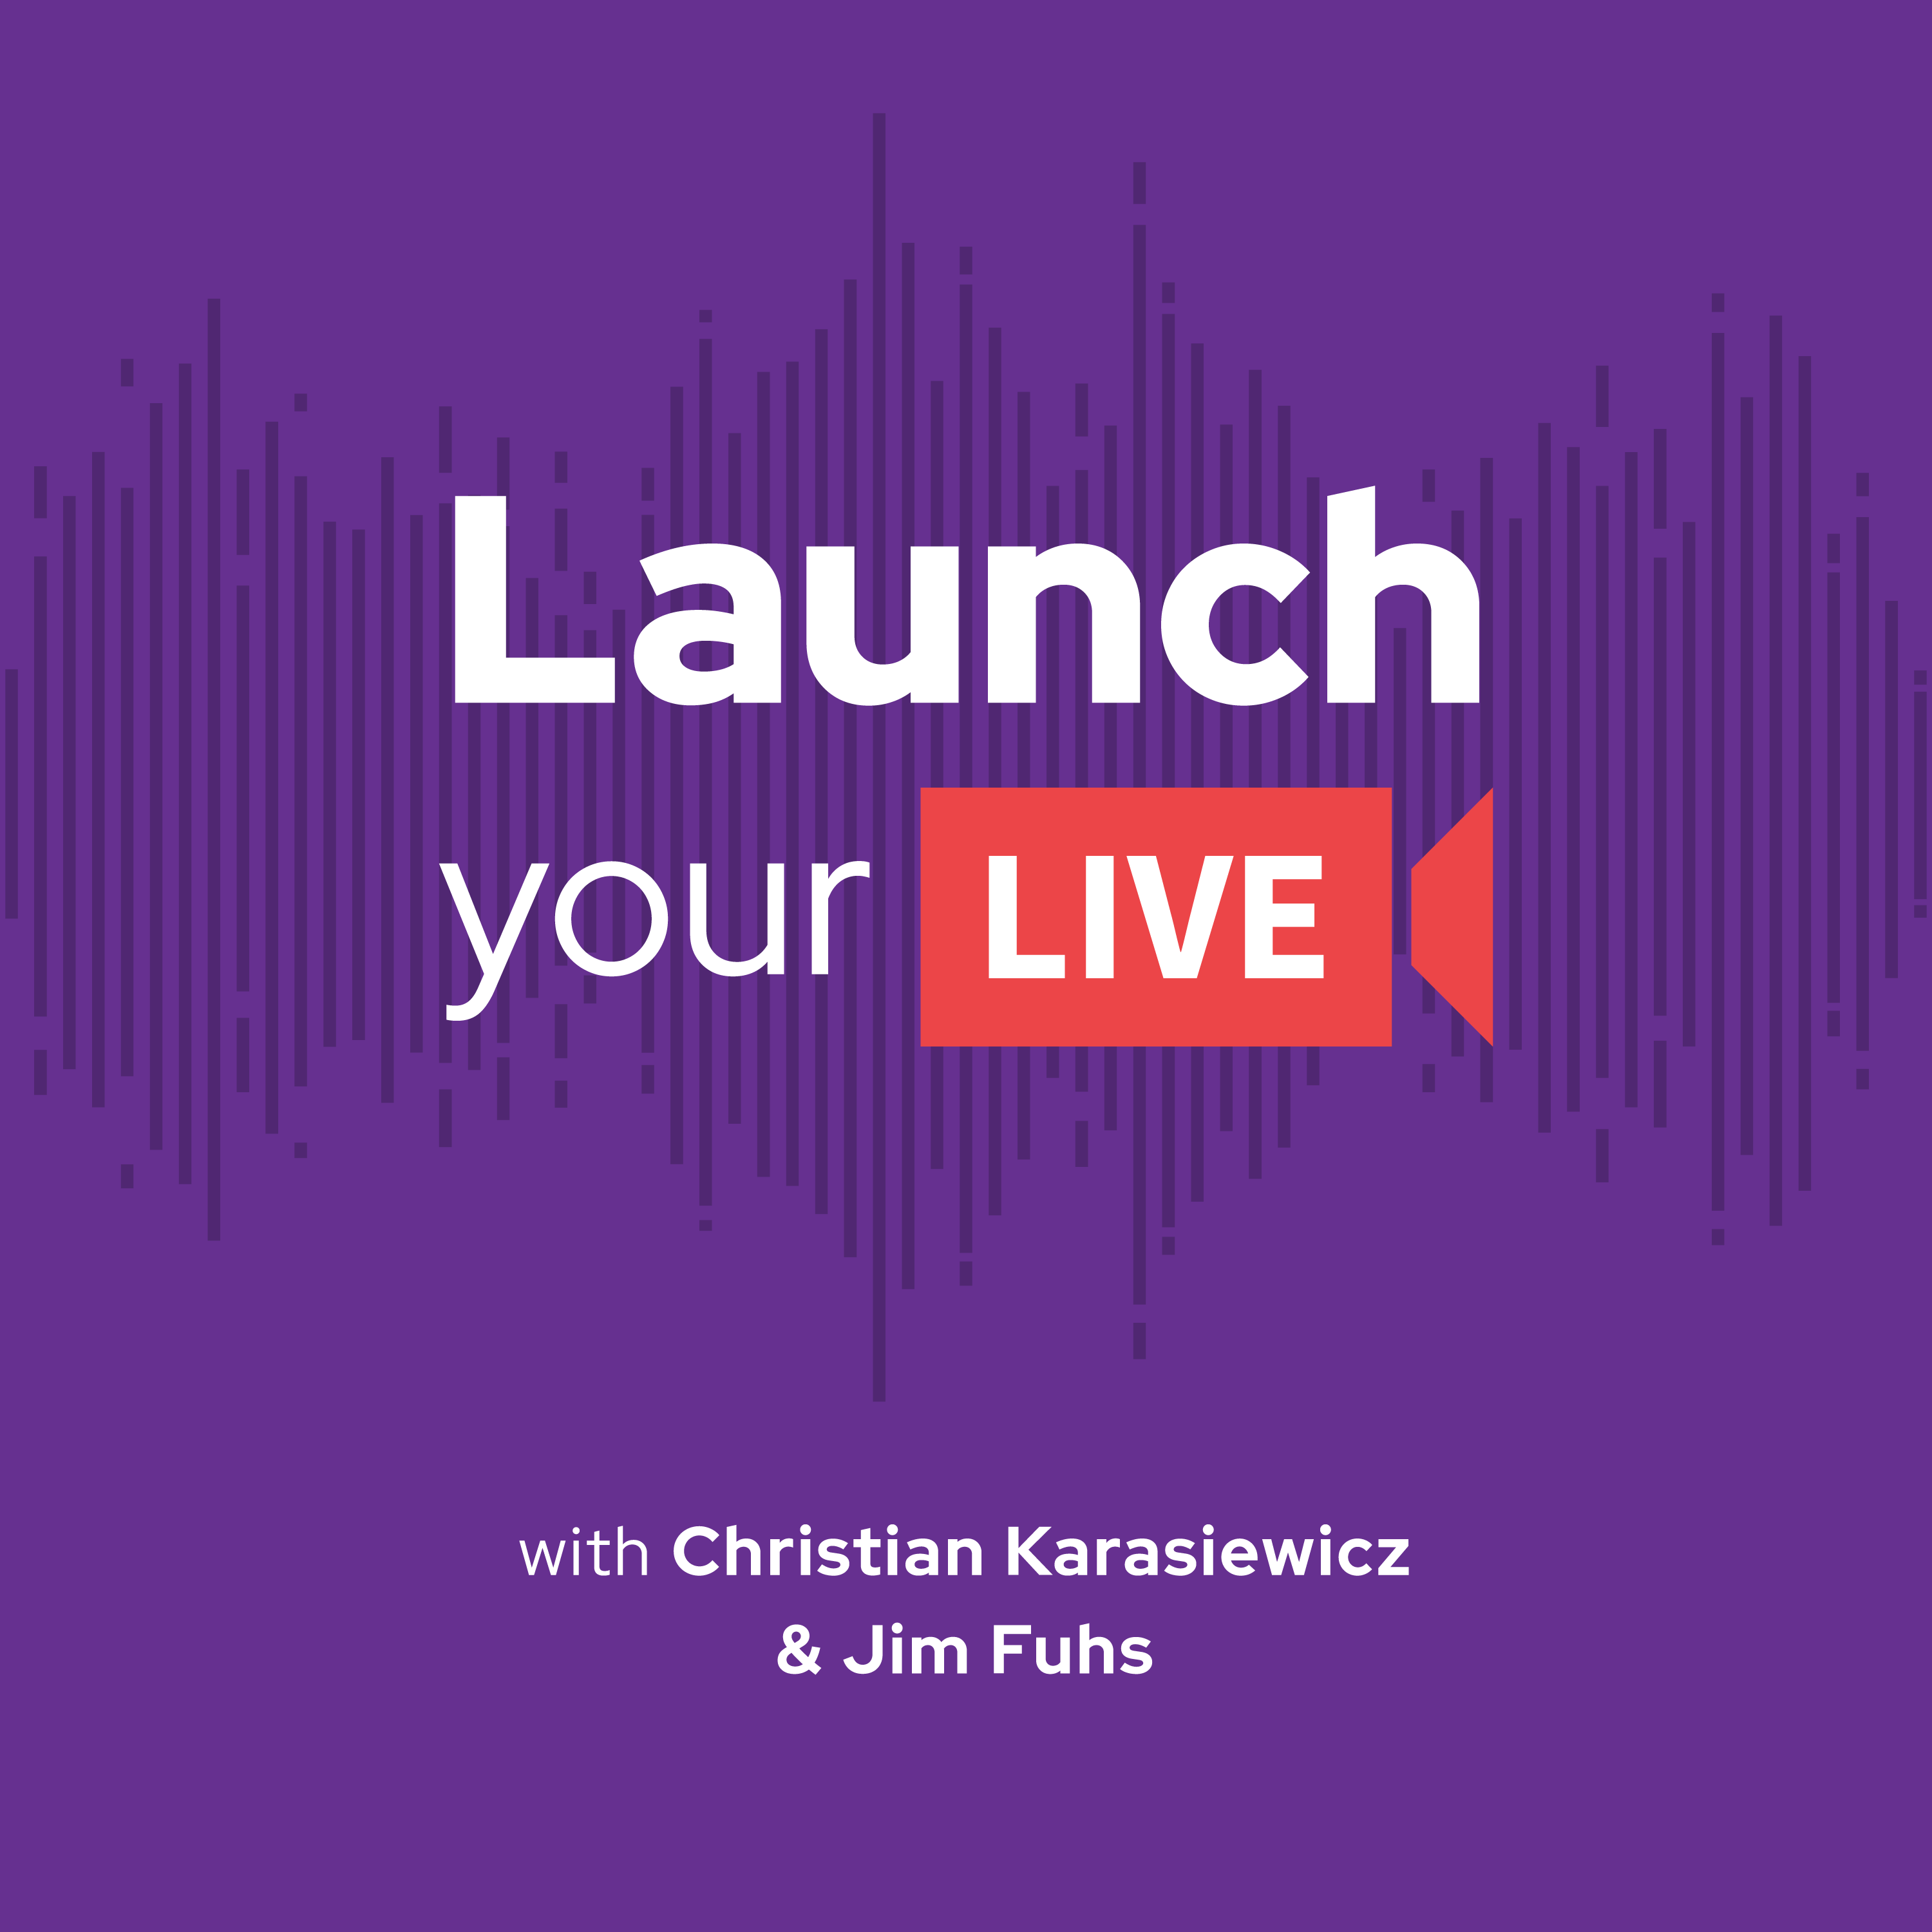 How to Pre-Promote Your Live Video Show to Get More Viewers